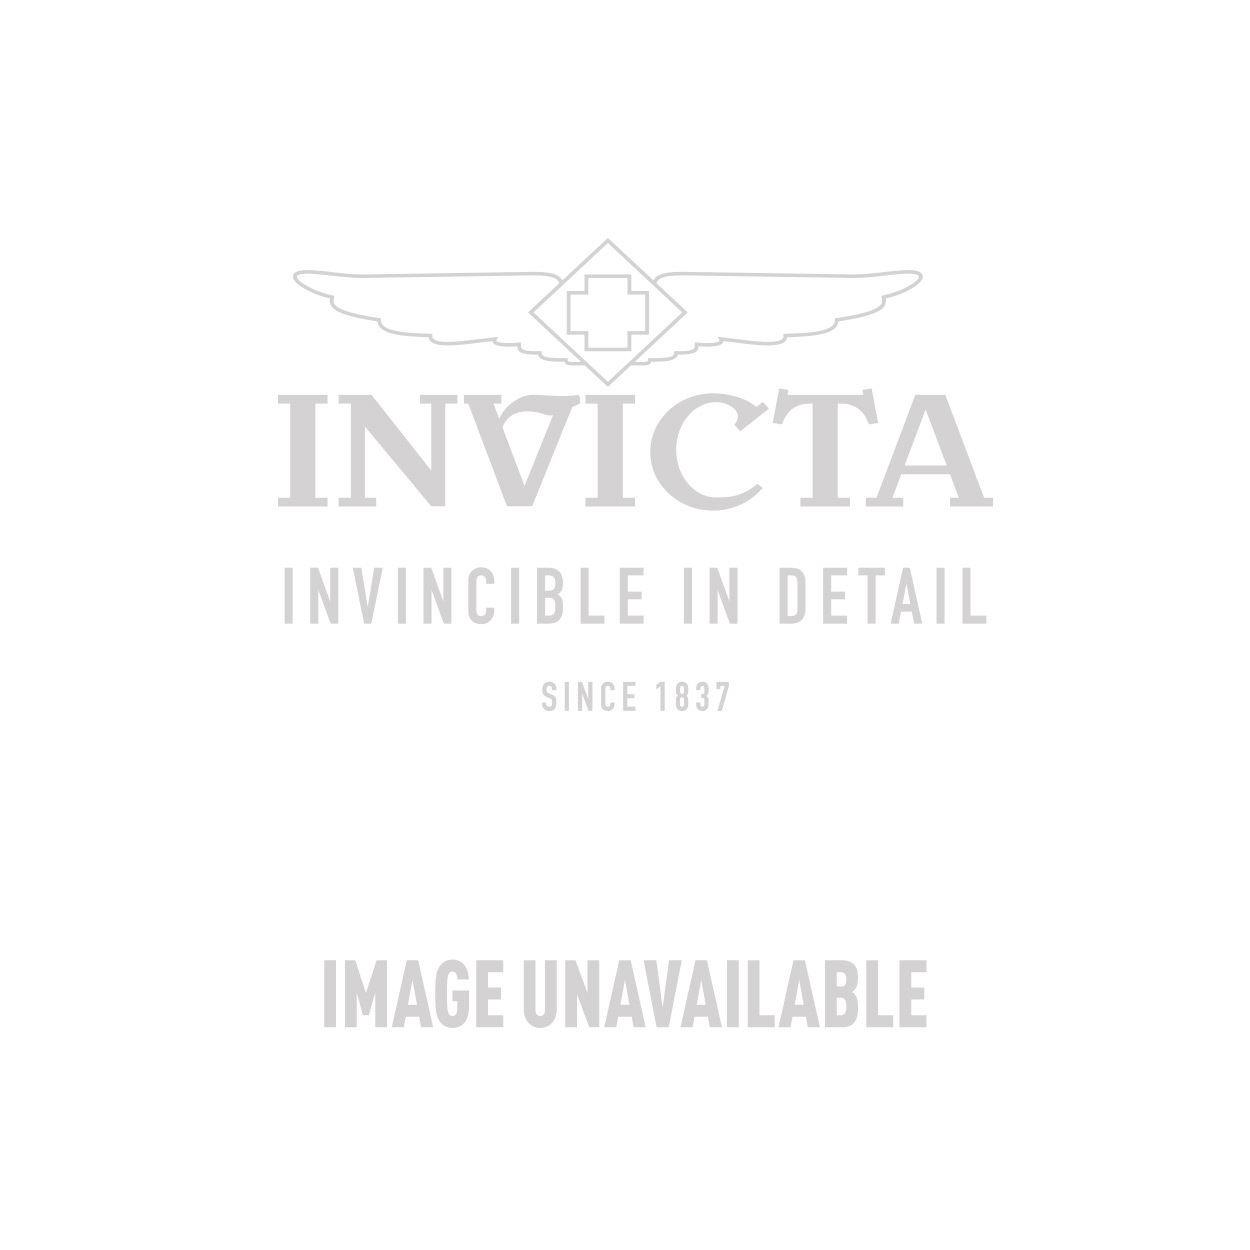 Invicta I-Force Quartz Watch - Stainless Steel case with Olive Green tone Rifle band - Model 1873